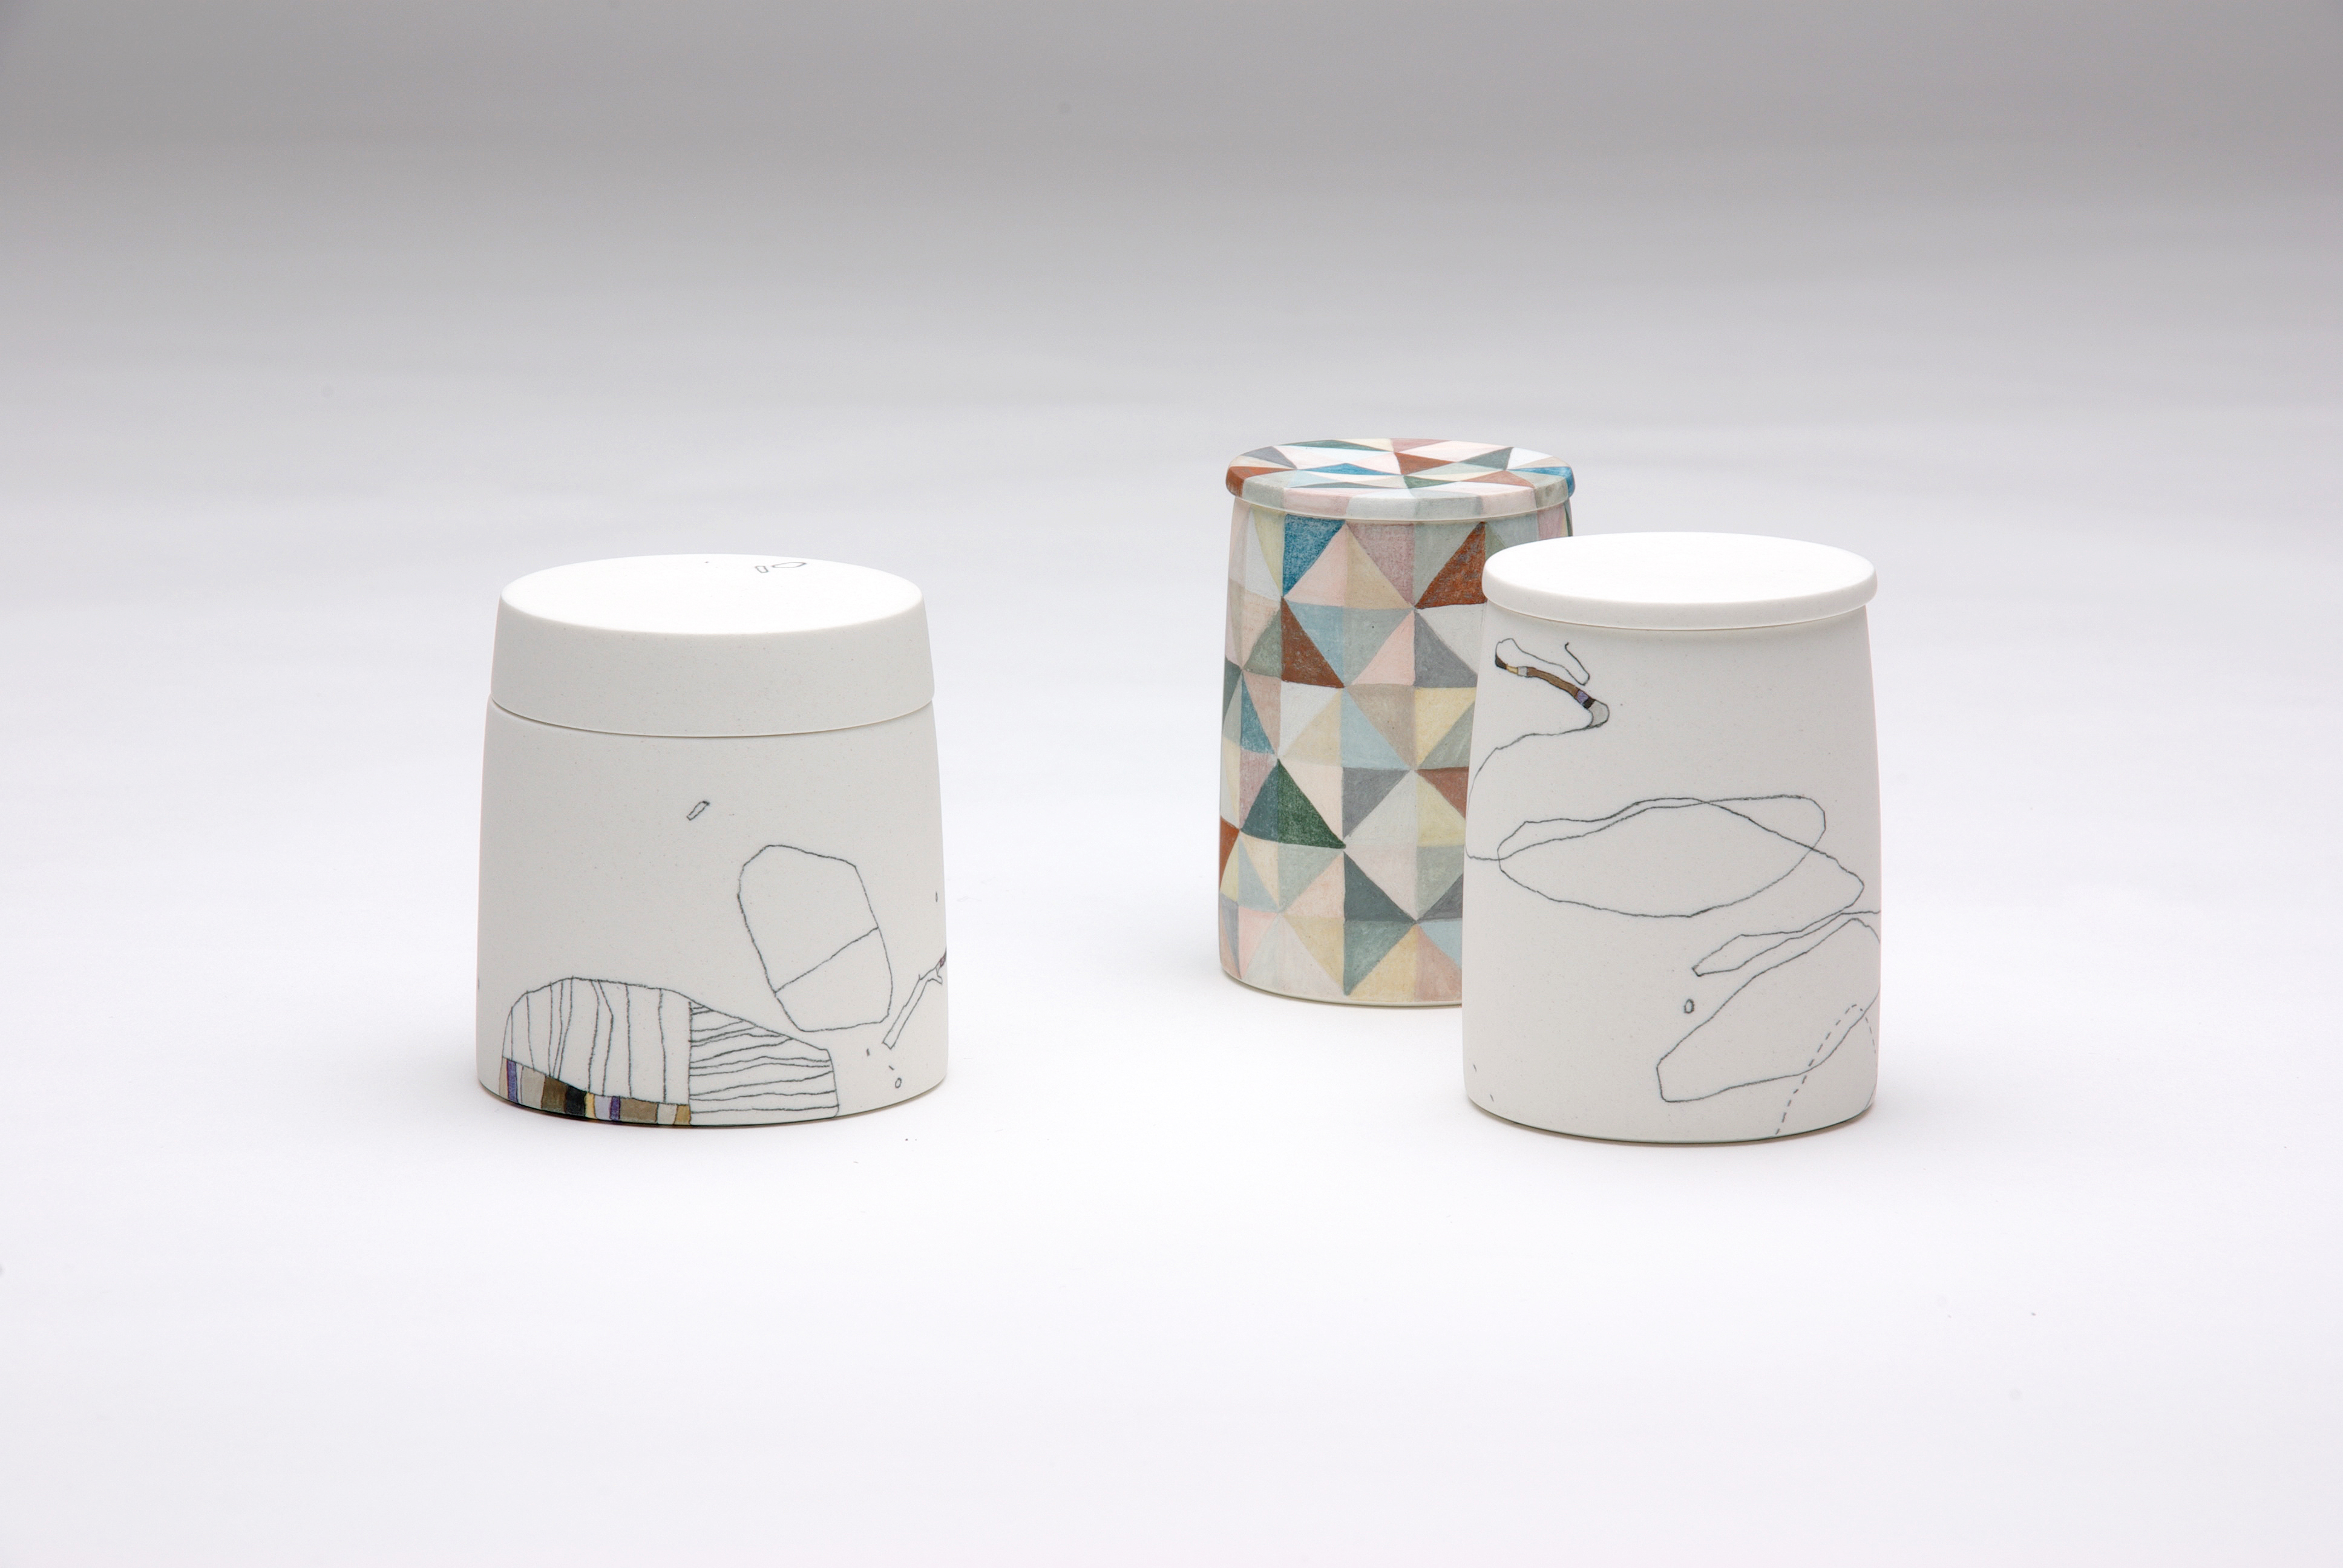 tania rollond tea containers 2016